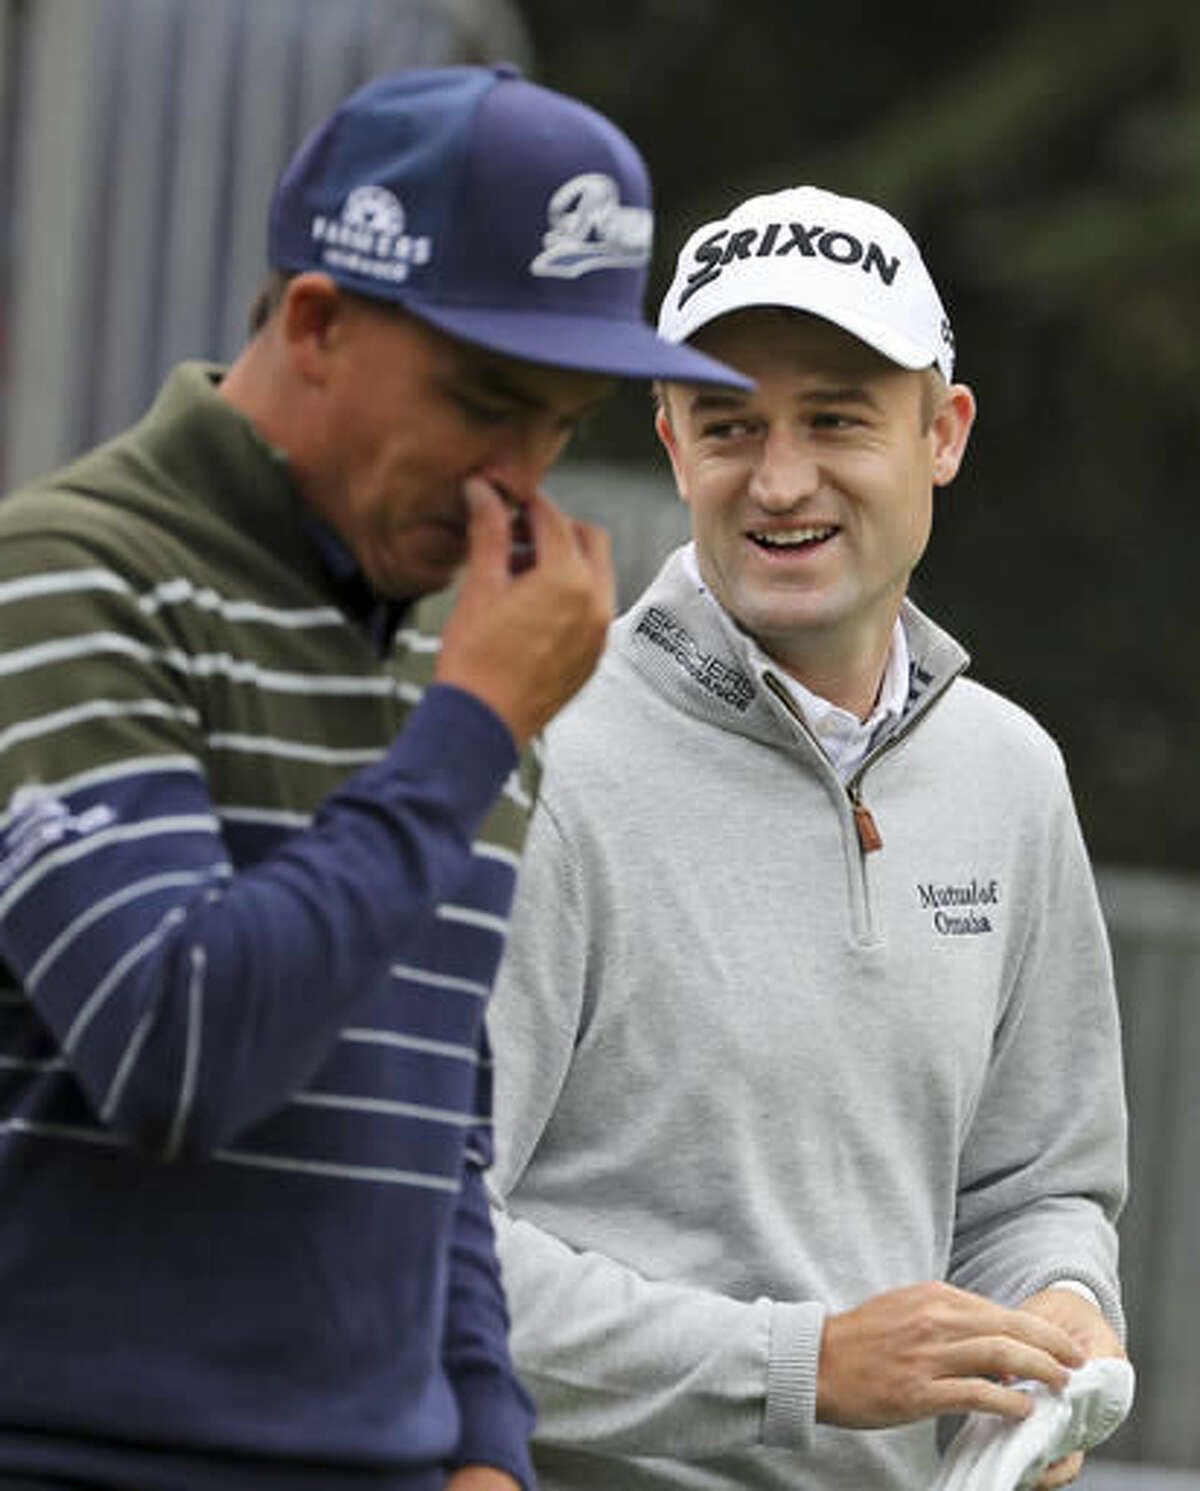 Scotland's Russell Knox, right talks to group member United State's Rickie Fowler during the 2016 WGC-HSBC Champions golf tournament at the Sheshan International Golf Club in Shanghai, China, Friday, Oct. 28, 2016. (AP Photo/Ng Han Guan)